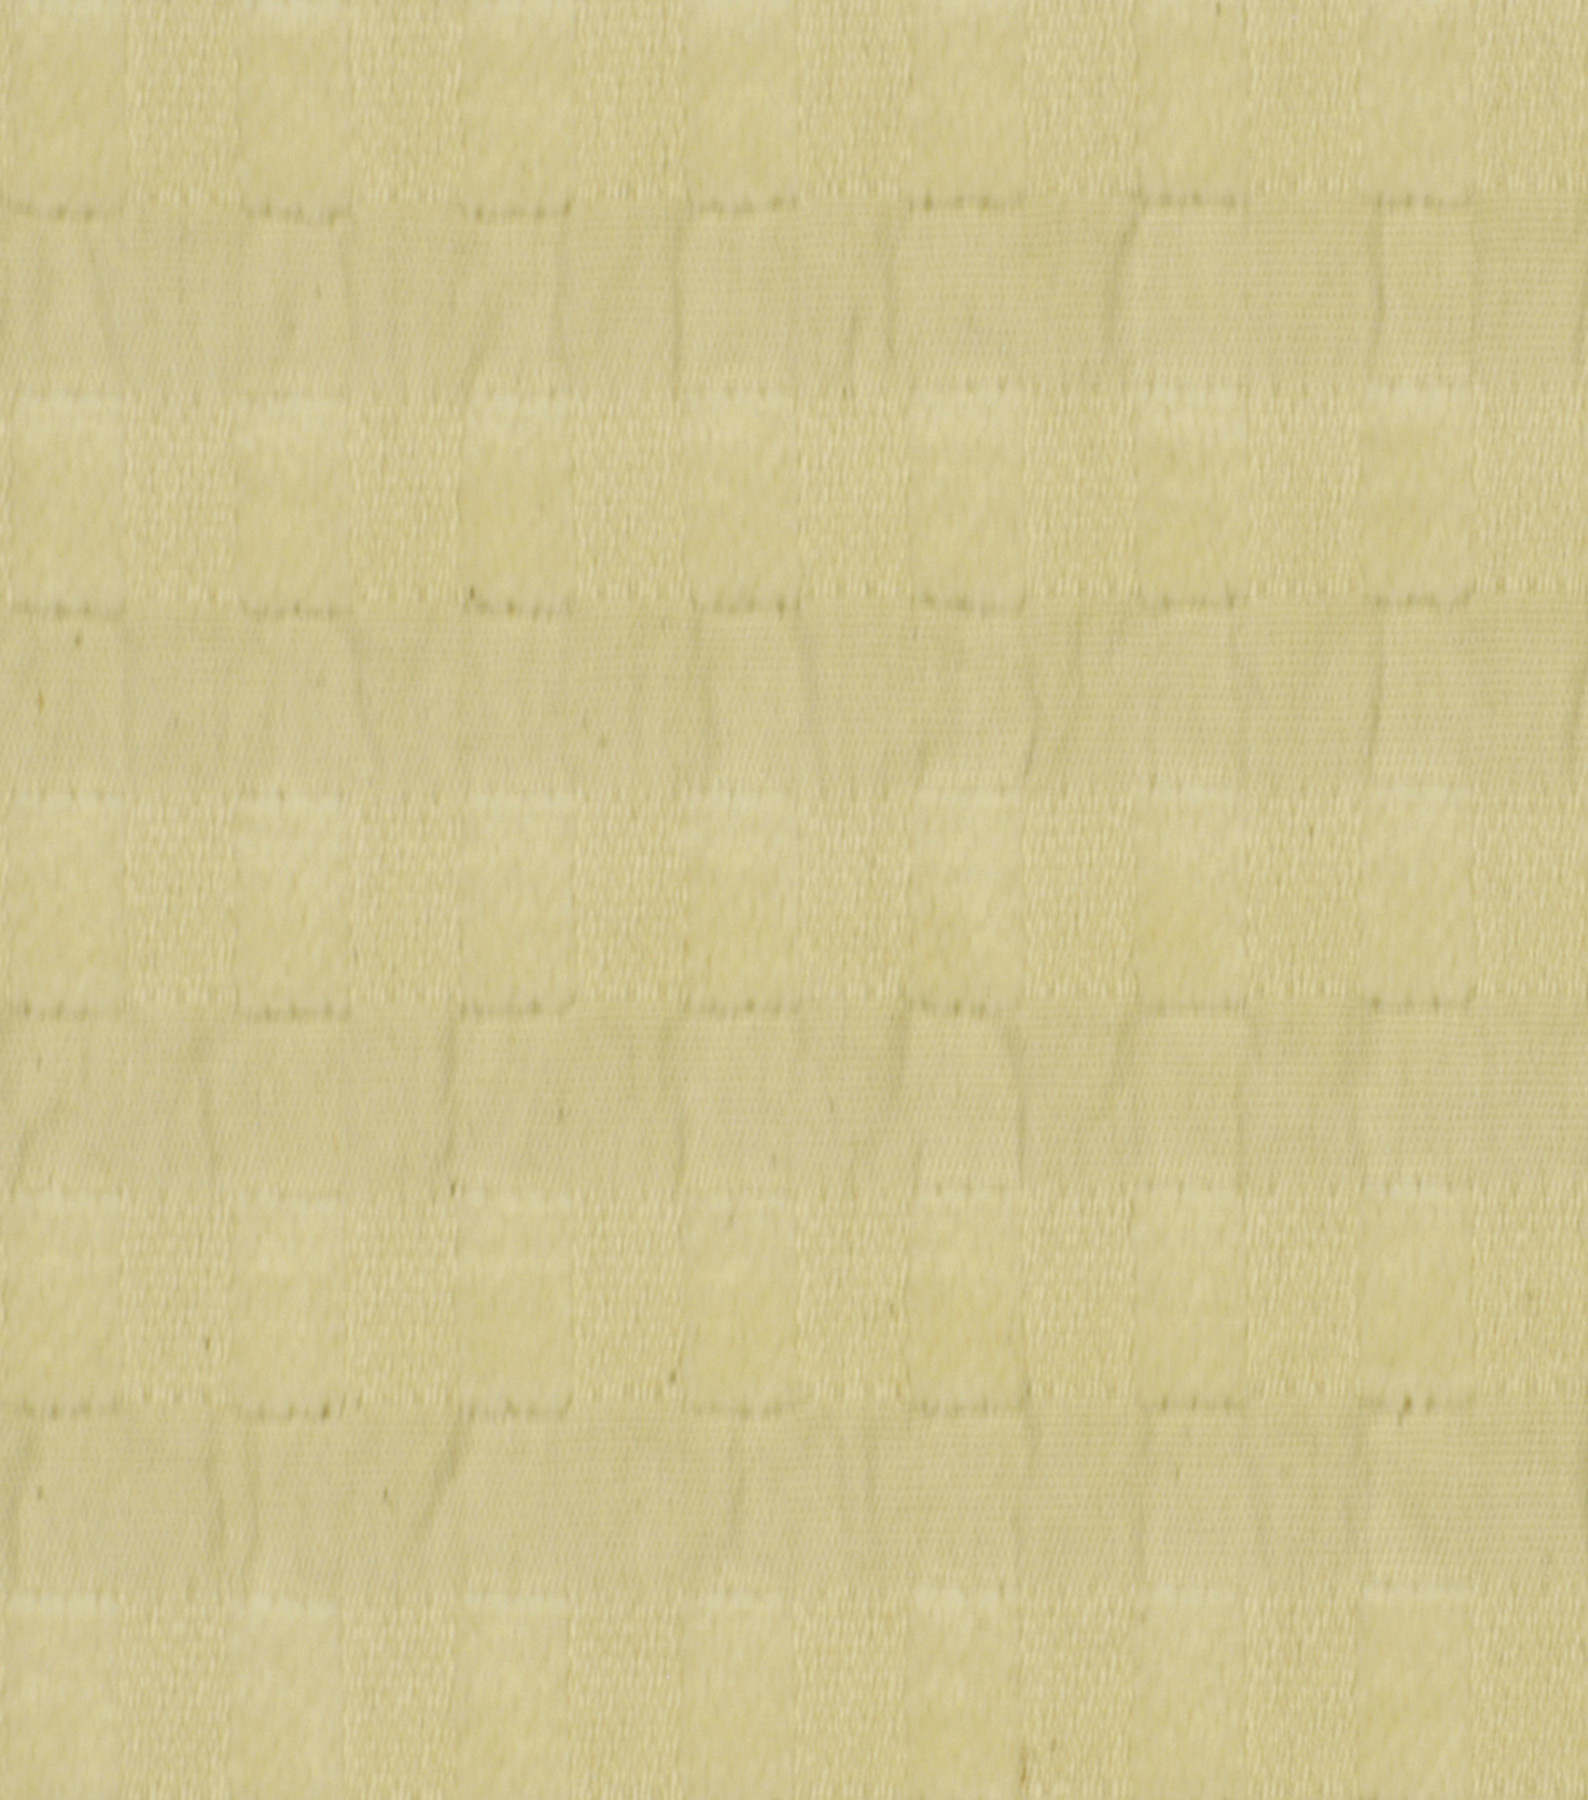 Home Decor 8\u0022x8\u0022 Fabric Swatch-Robert Allen Dobby Block Natural  Wash